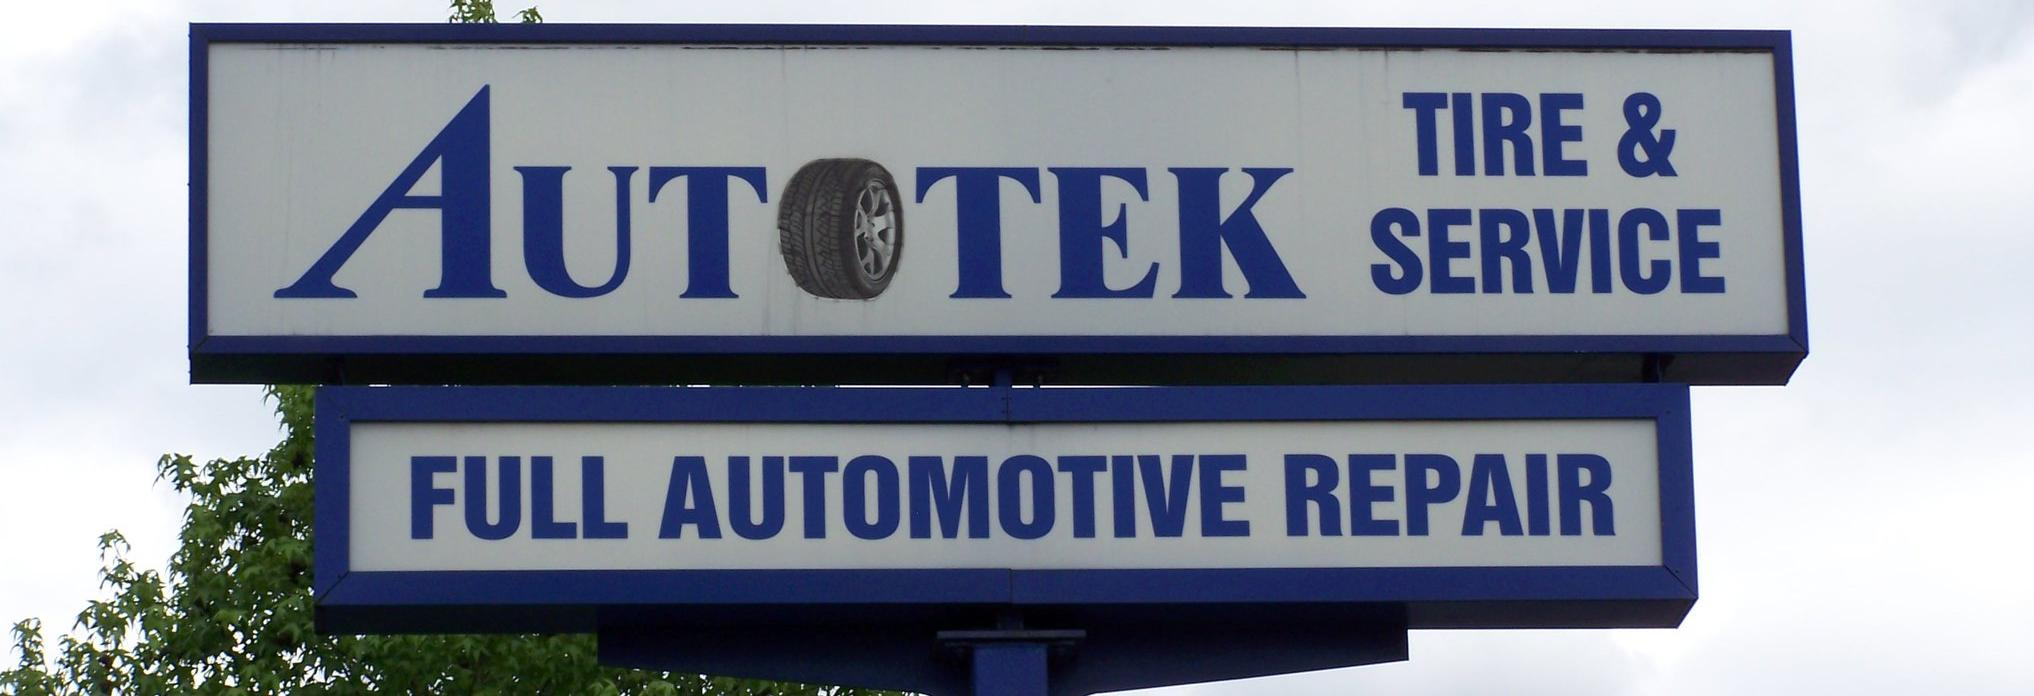 Autotek Tire & Service - Full Automotive Repair - Kent, WA